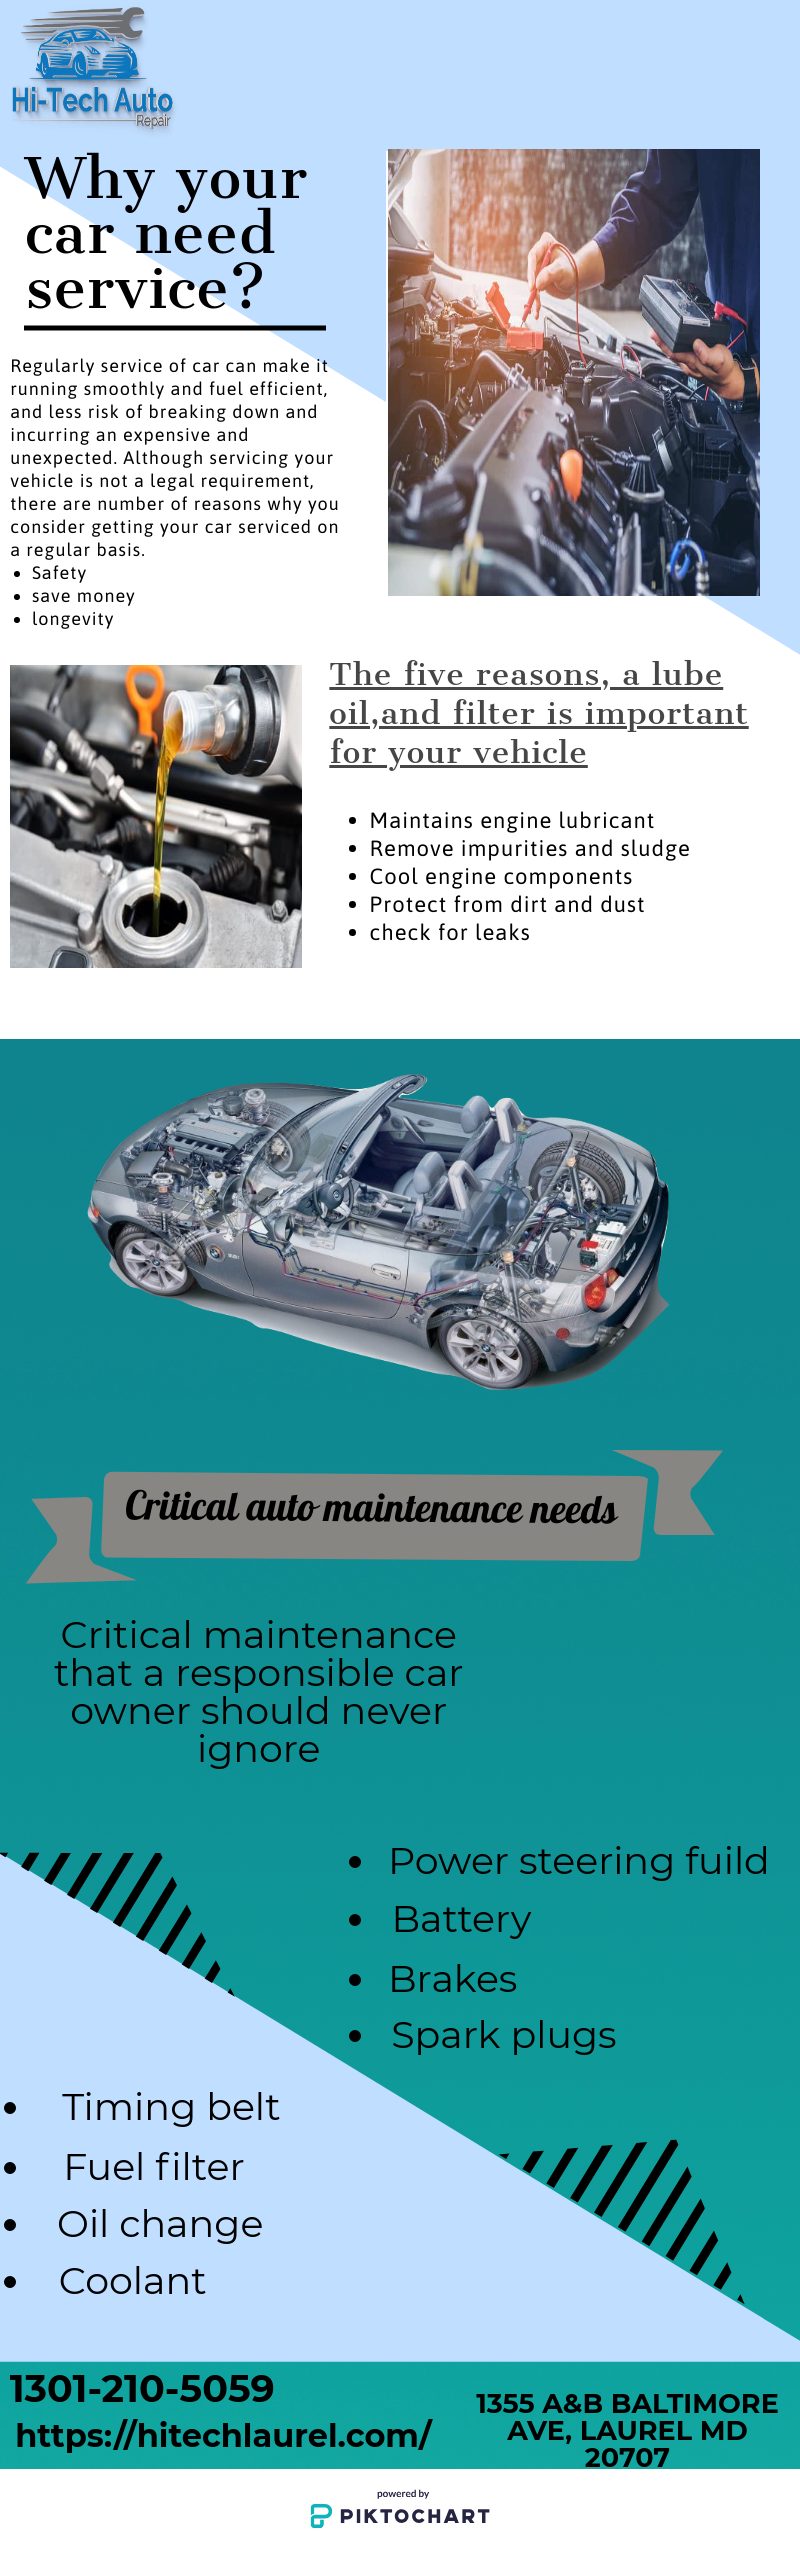 We are providing quality auto repair at best prices near